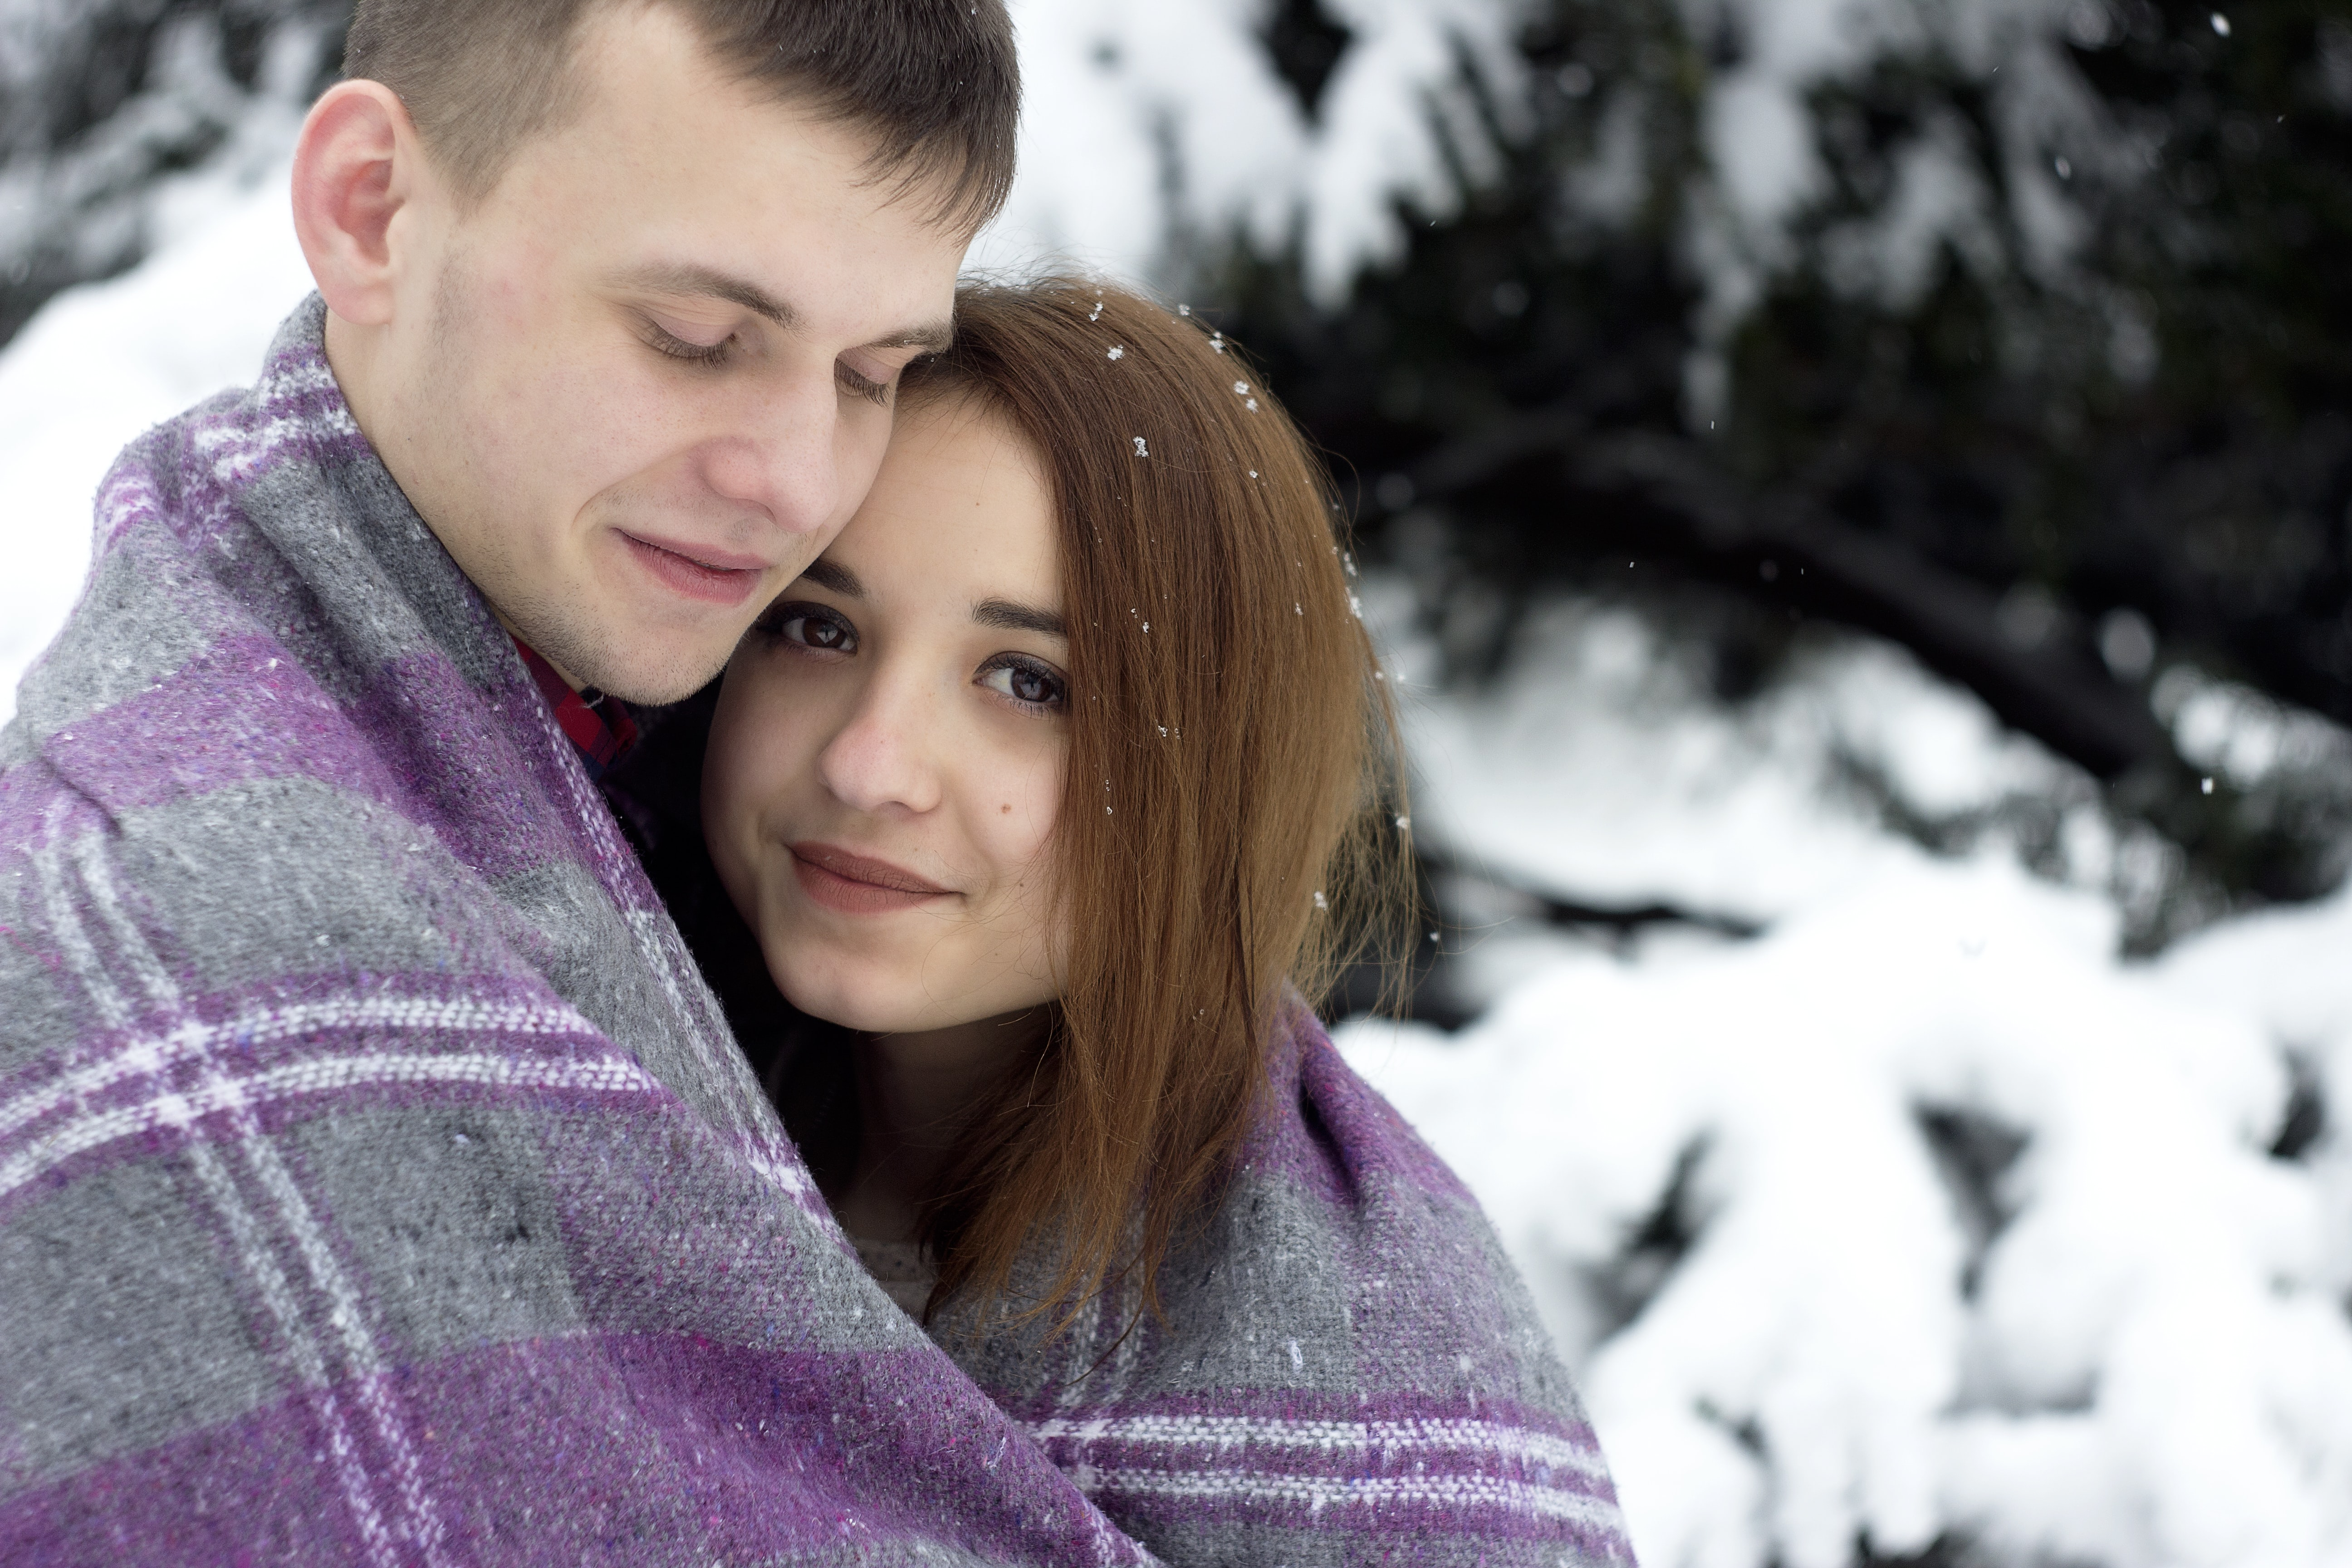 A happy man and woman wrapped in a blanket together next to a snow covered tree.